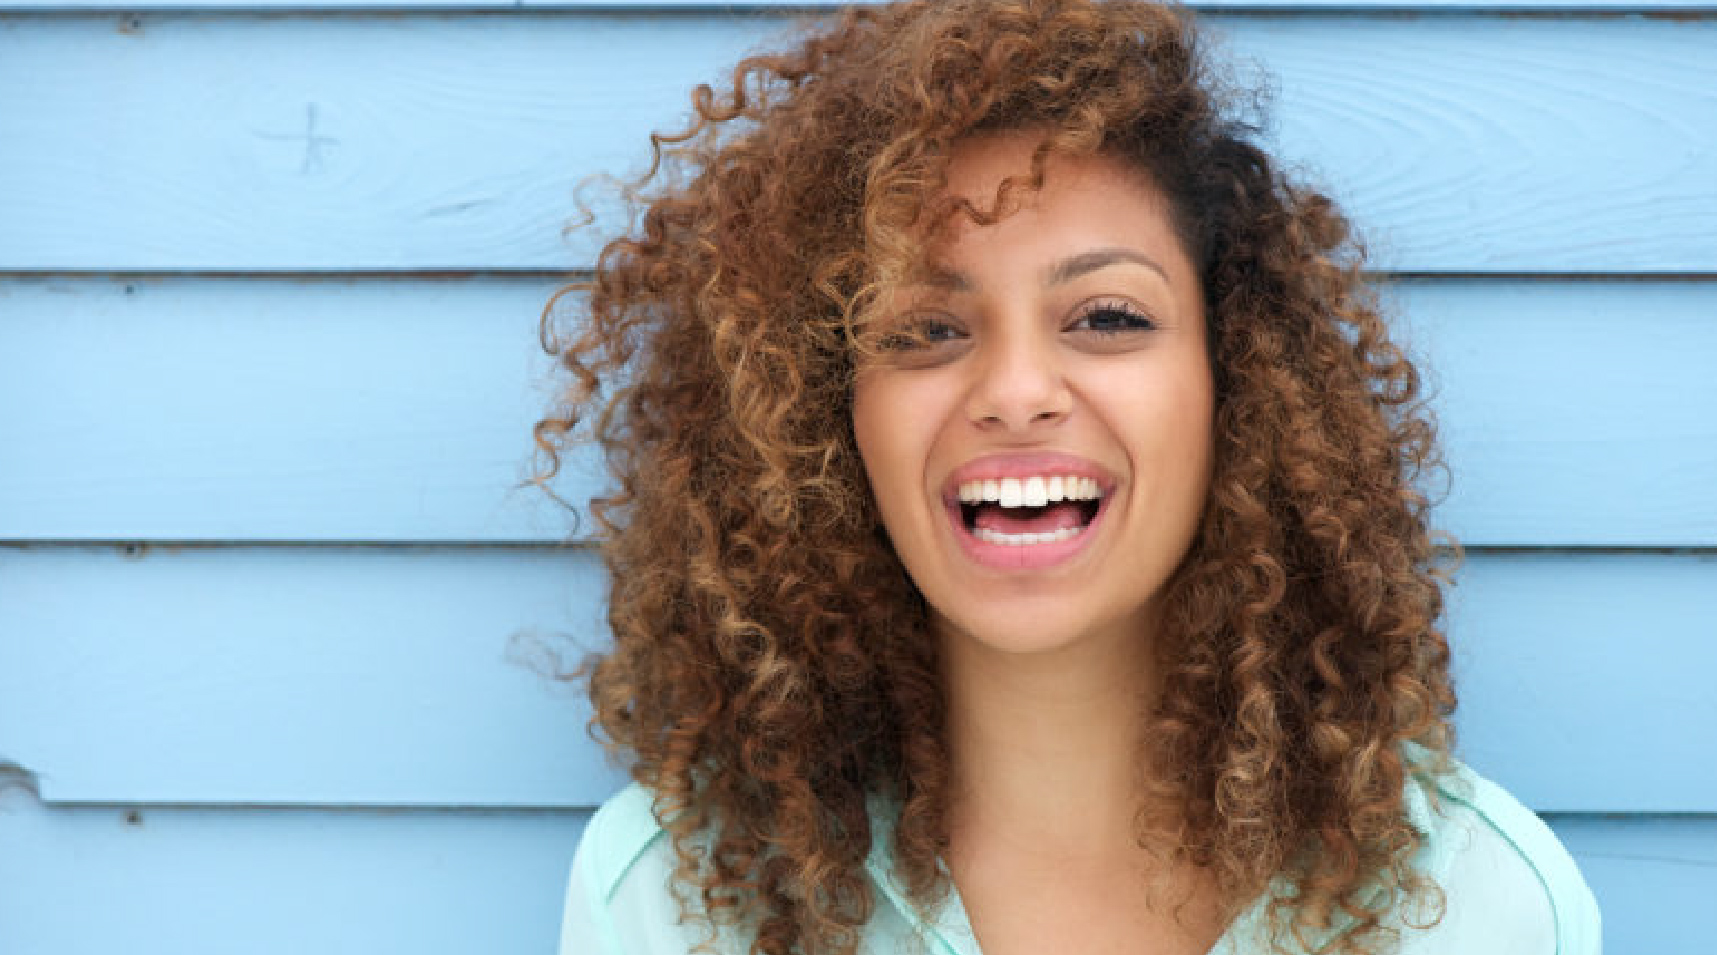 Woman smiling wide while standing in front of a blue wall